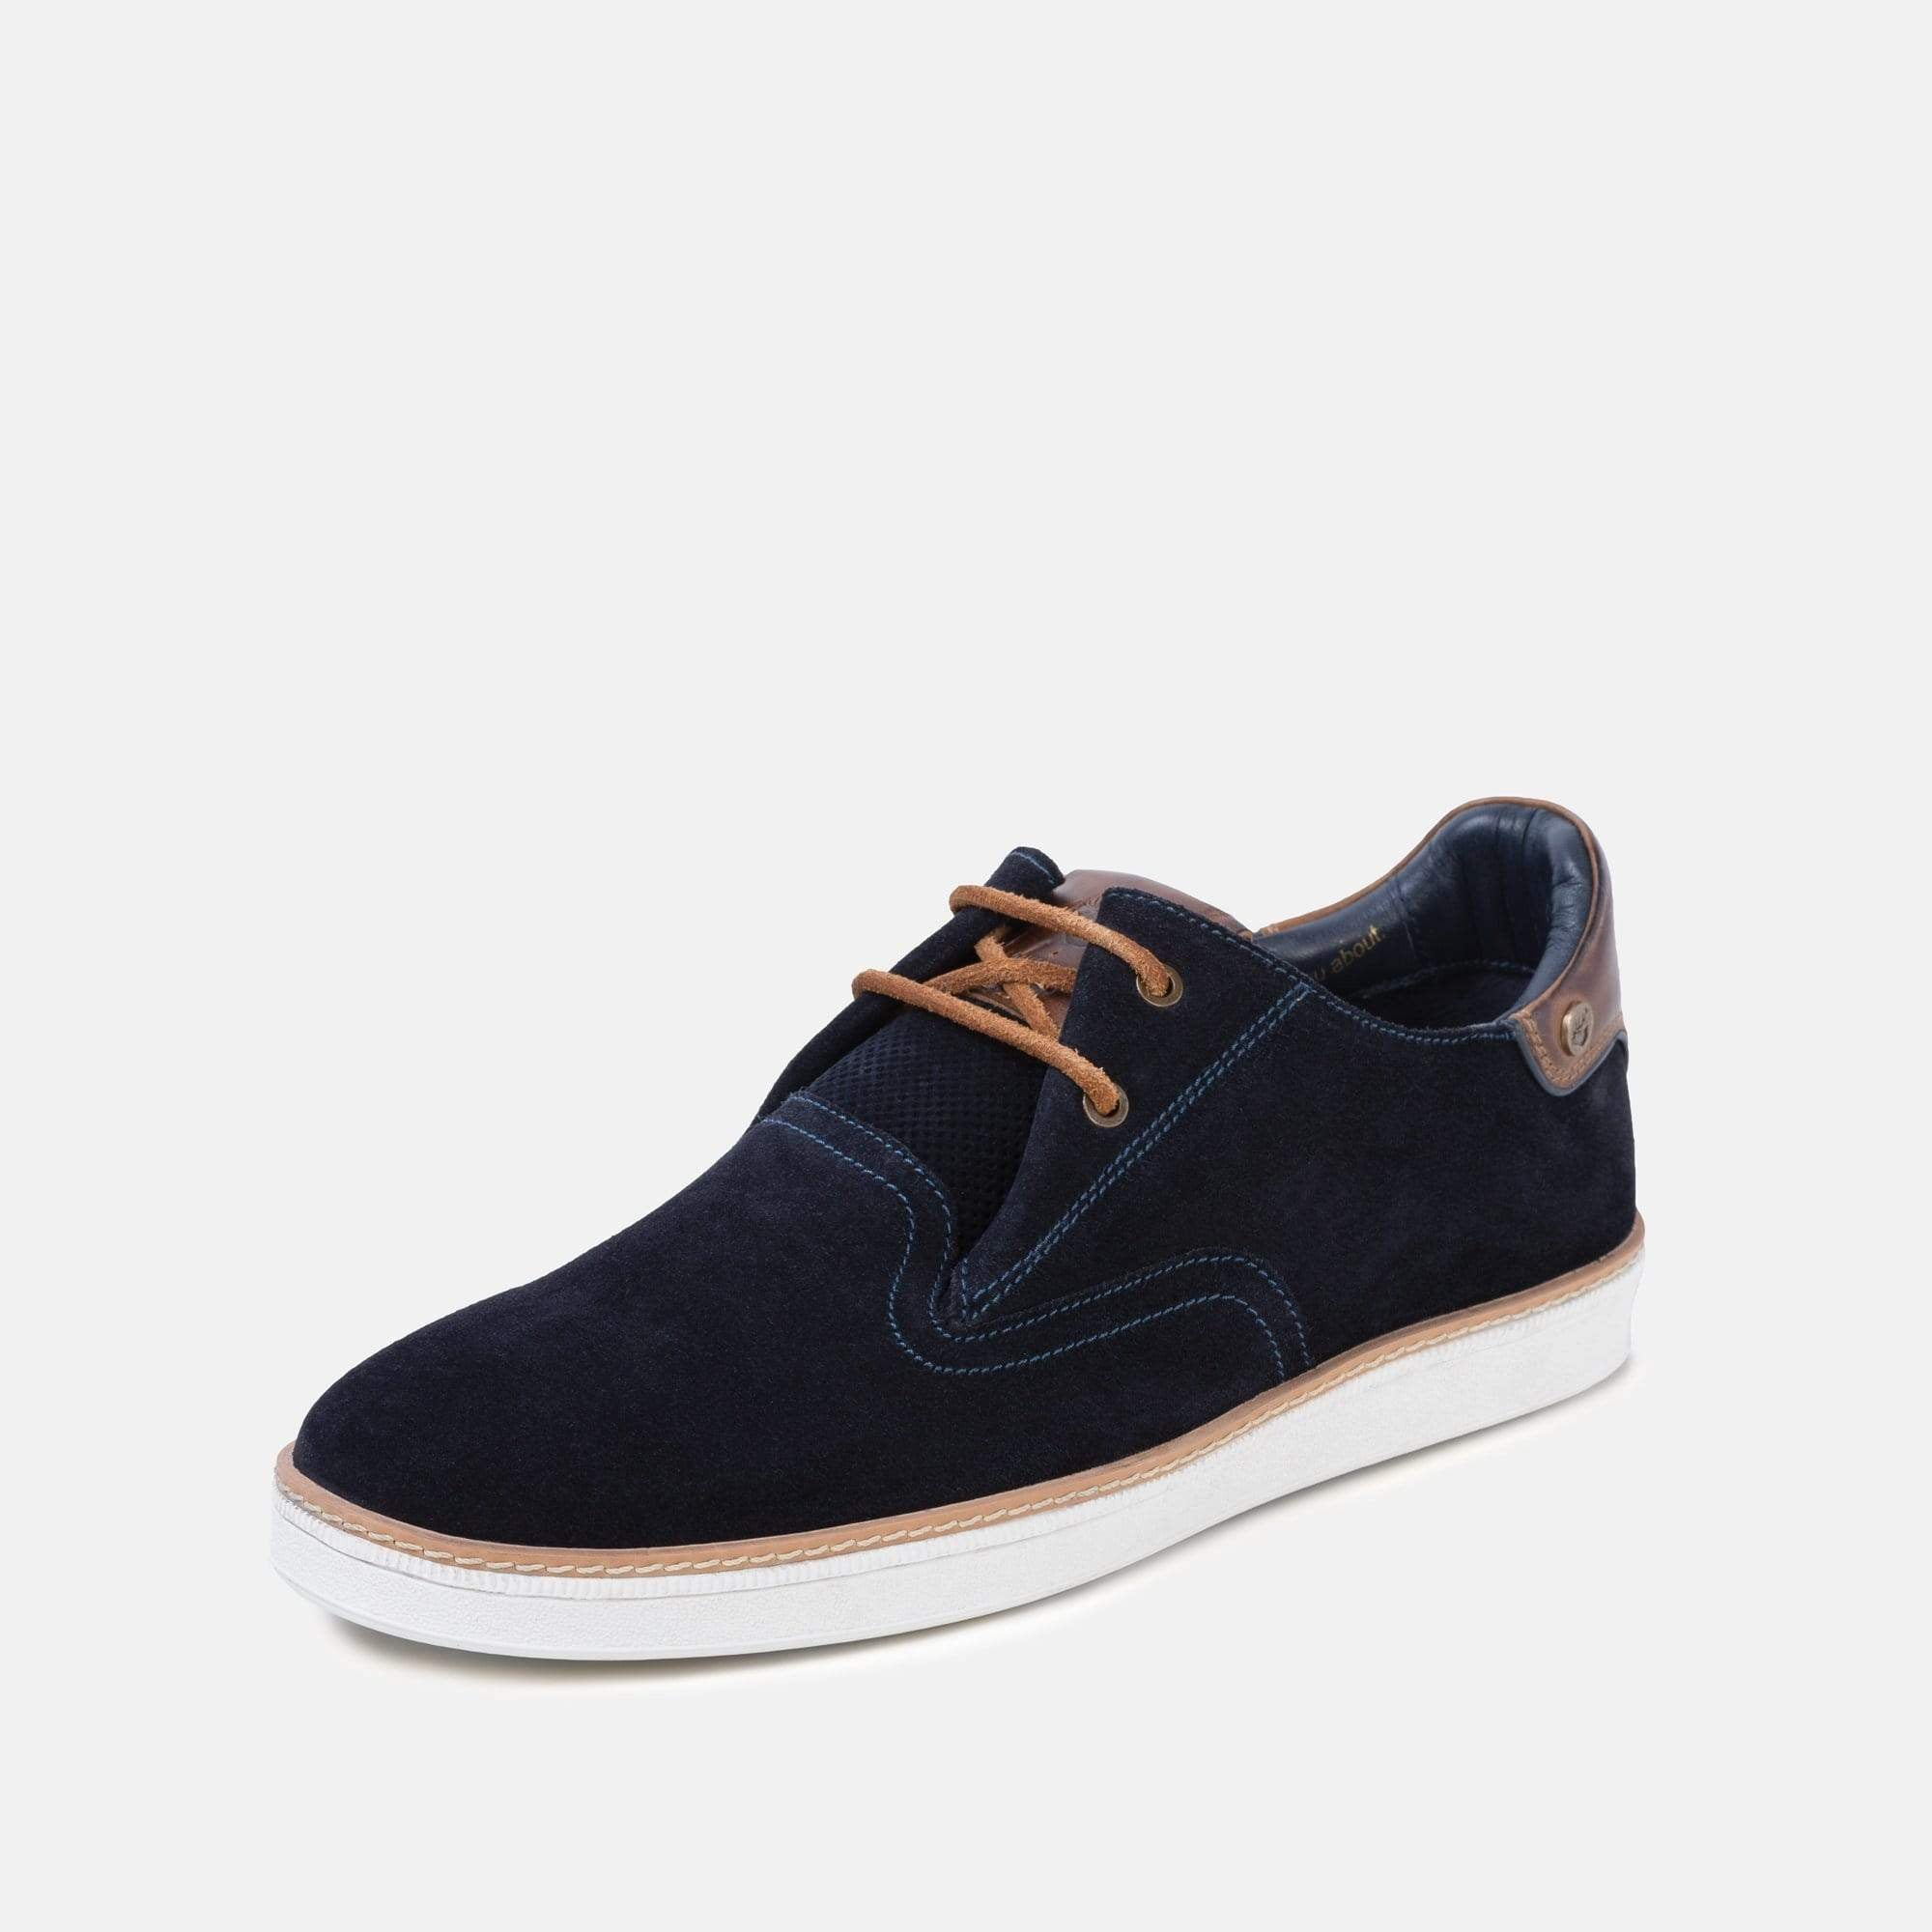 Summery casual suede lace up plimsoll shoe for men